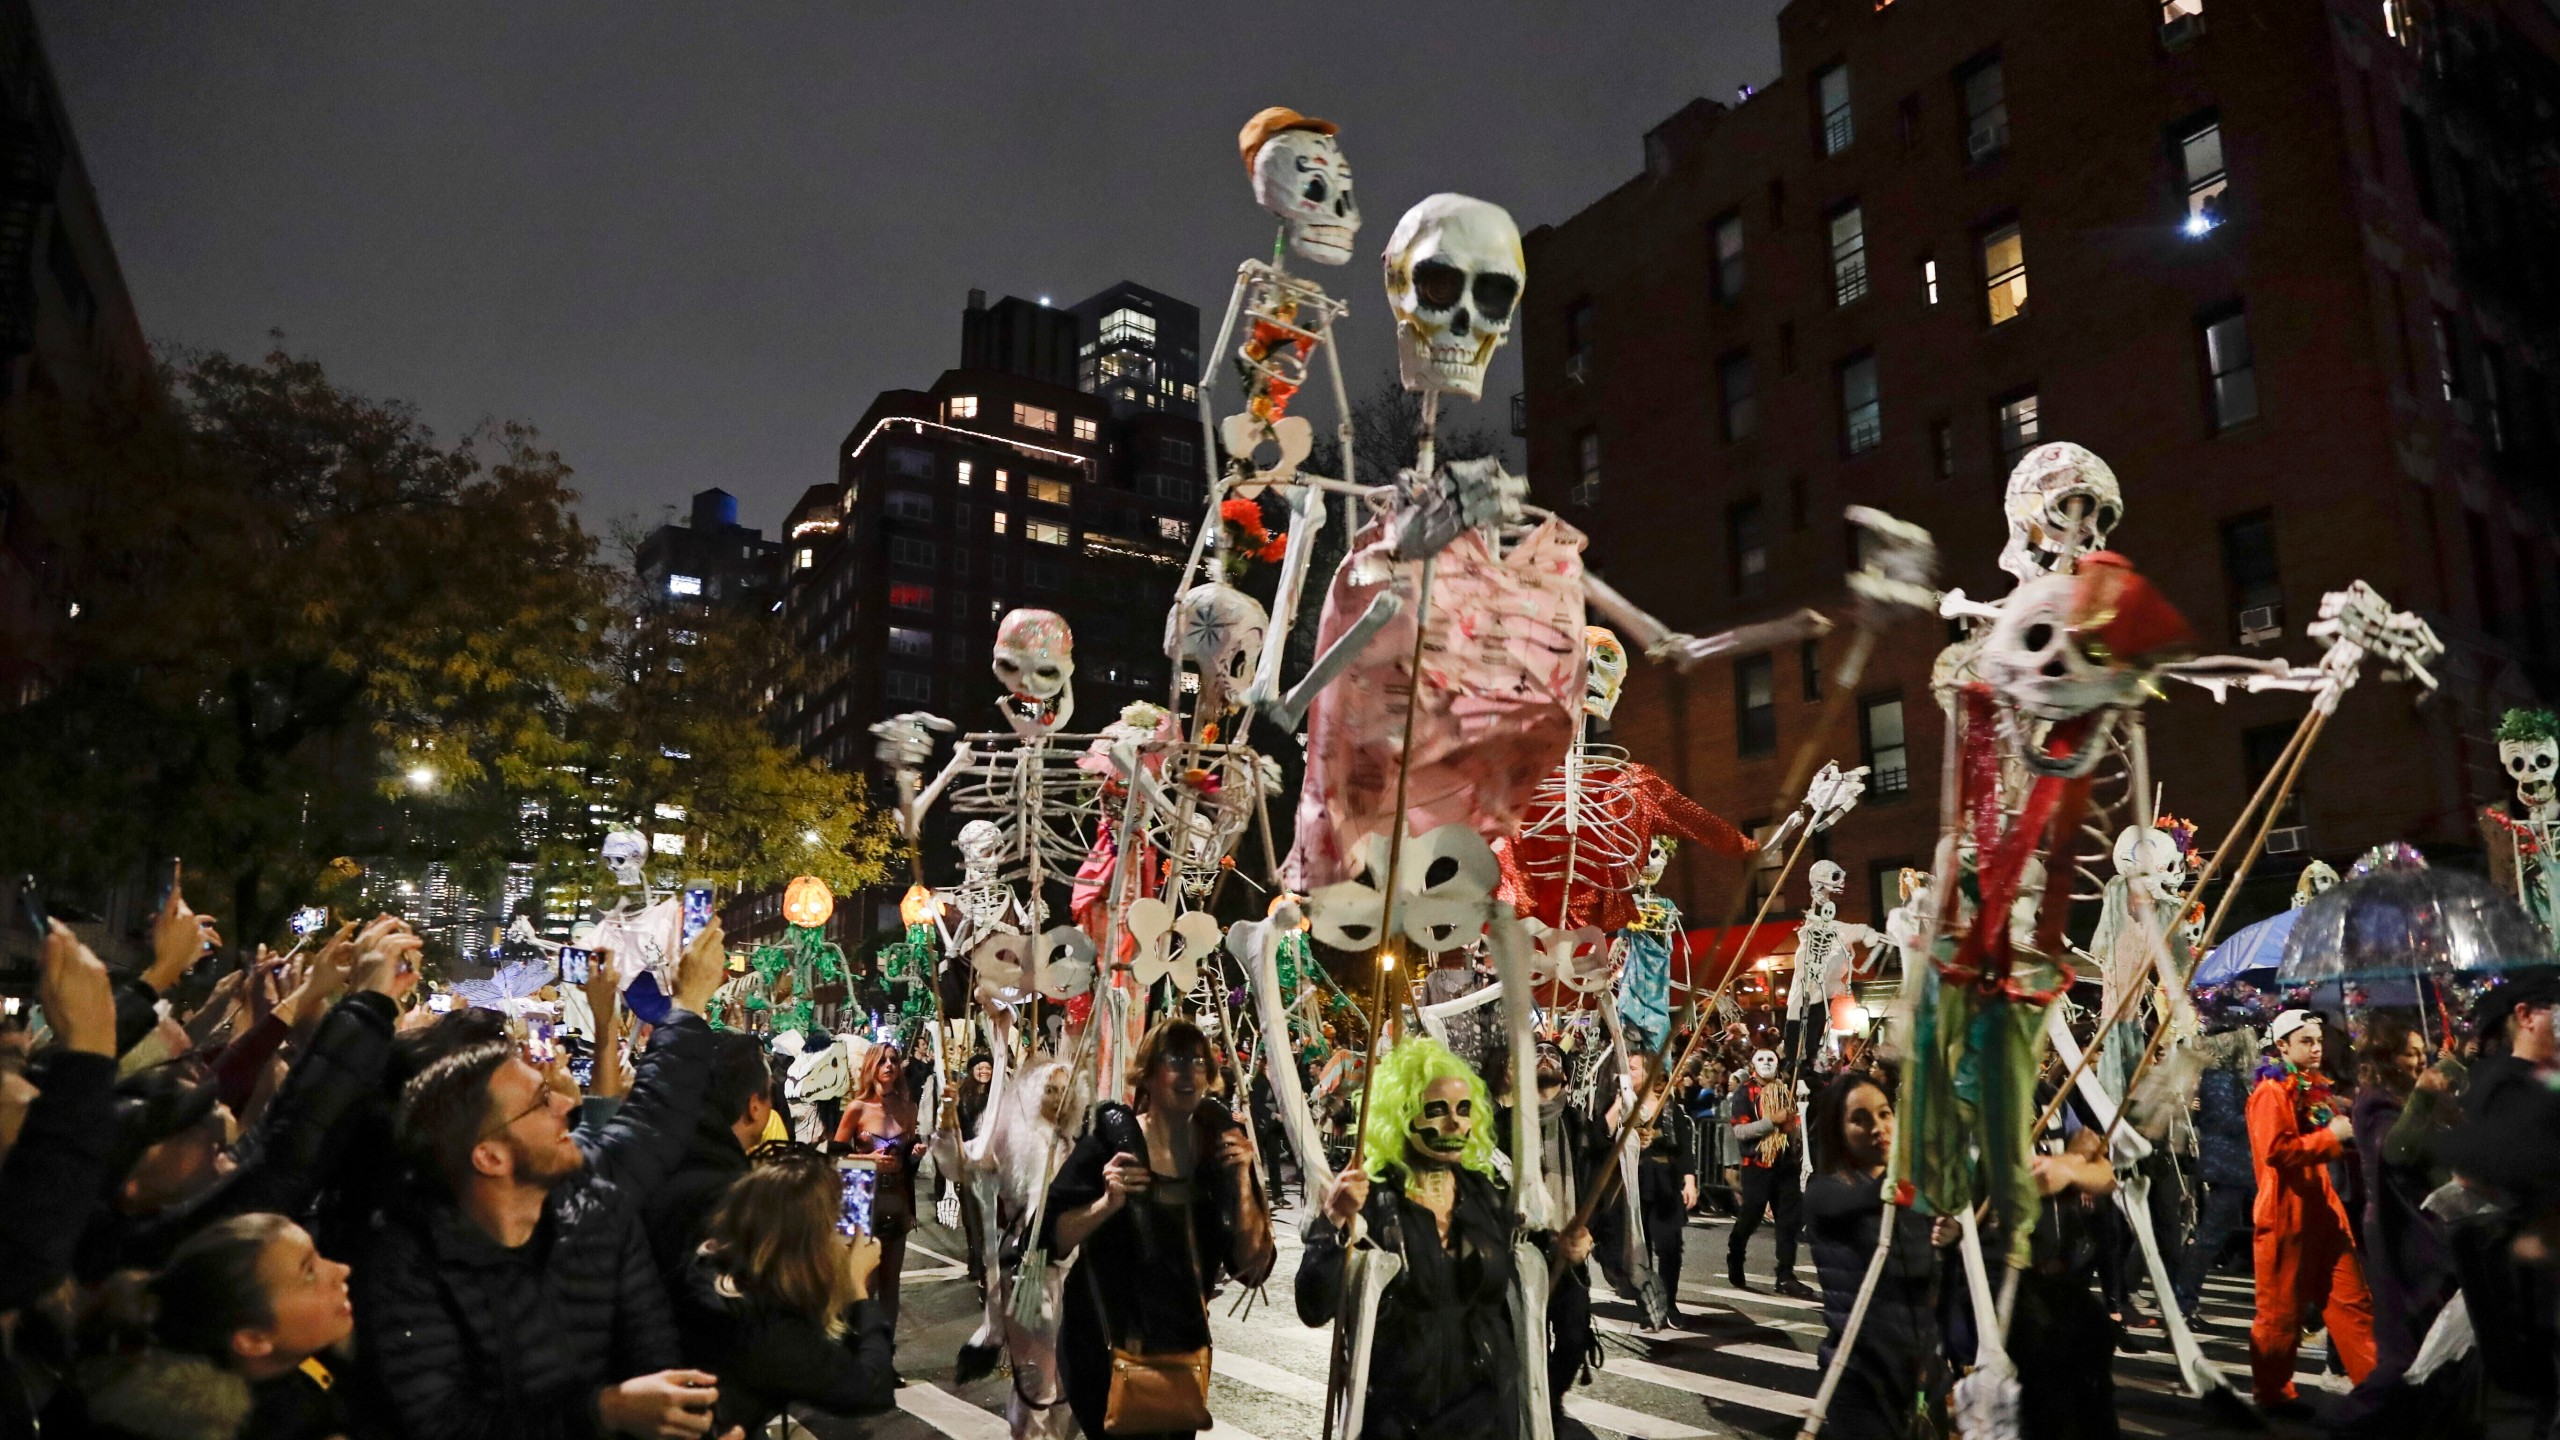 Inside Halloween Events 2020 Near Camden Ny Trick or What? Pandemic Halloween is a mixed bag all around | KTVE